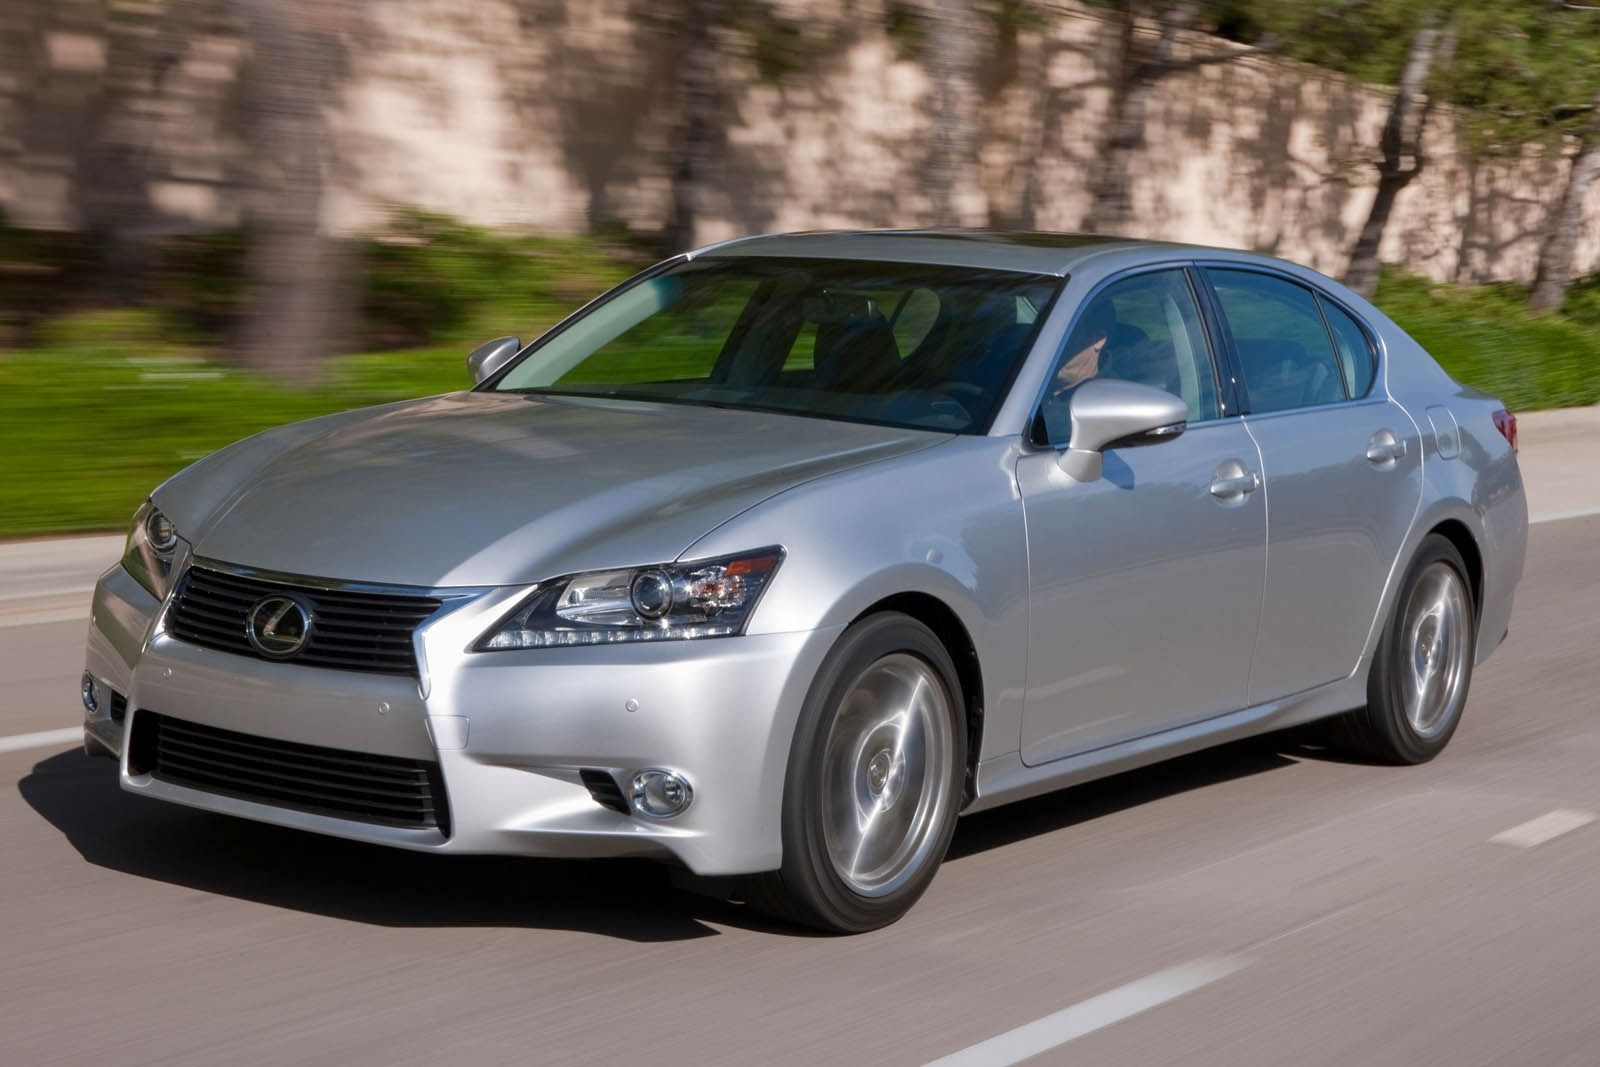 2015 lexus gs 350 photos informations articles. Black Bedroom Furniture Sets. Home Design Ideas